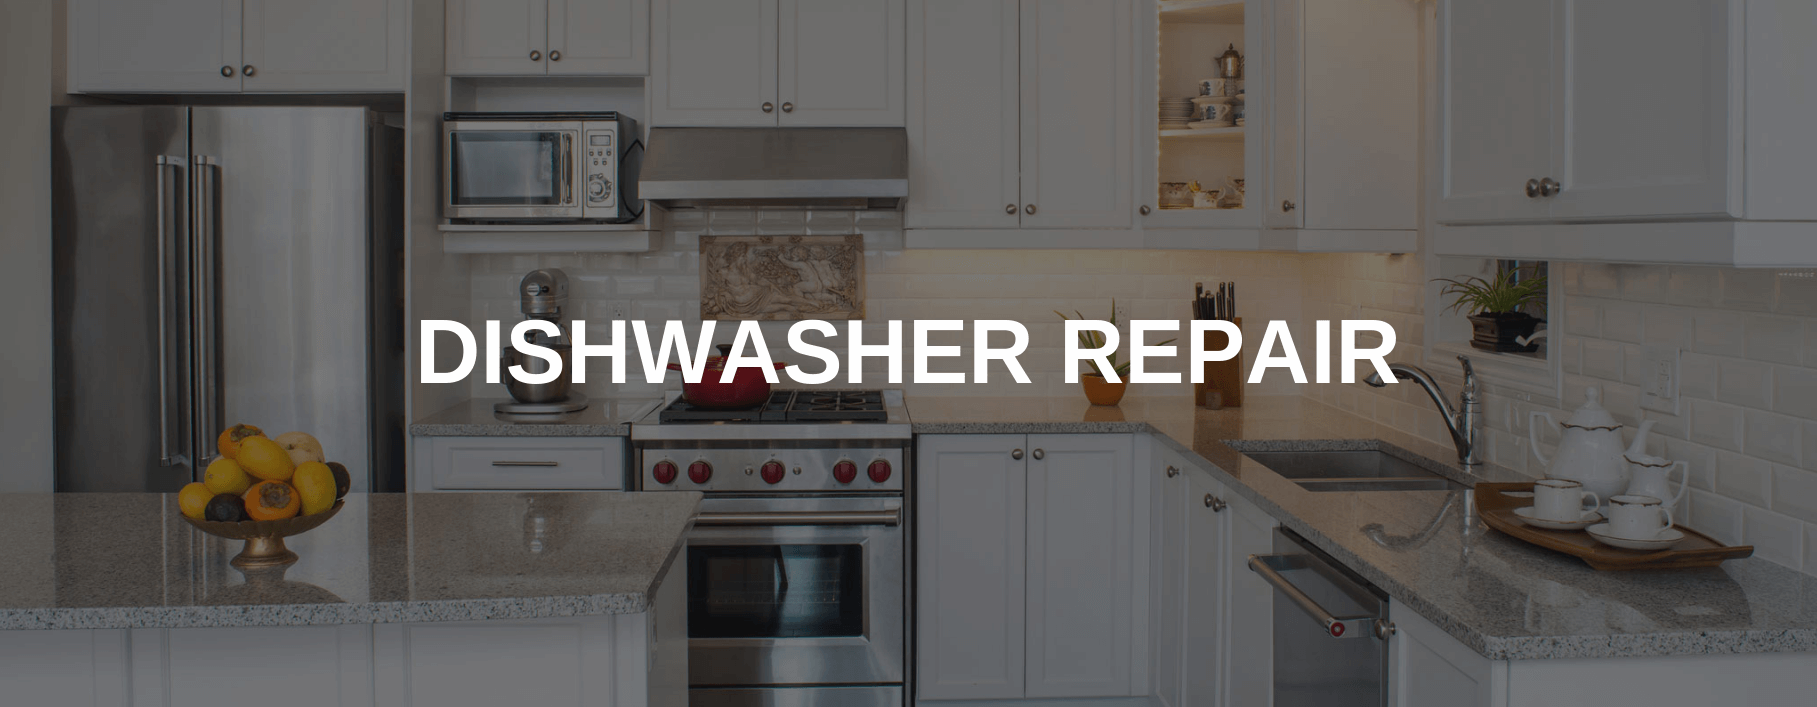 dishwasher repair aurora